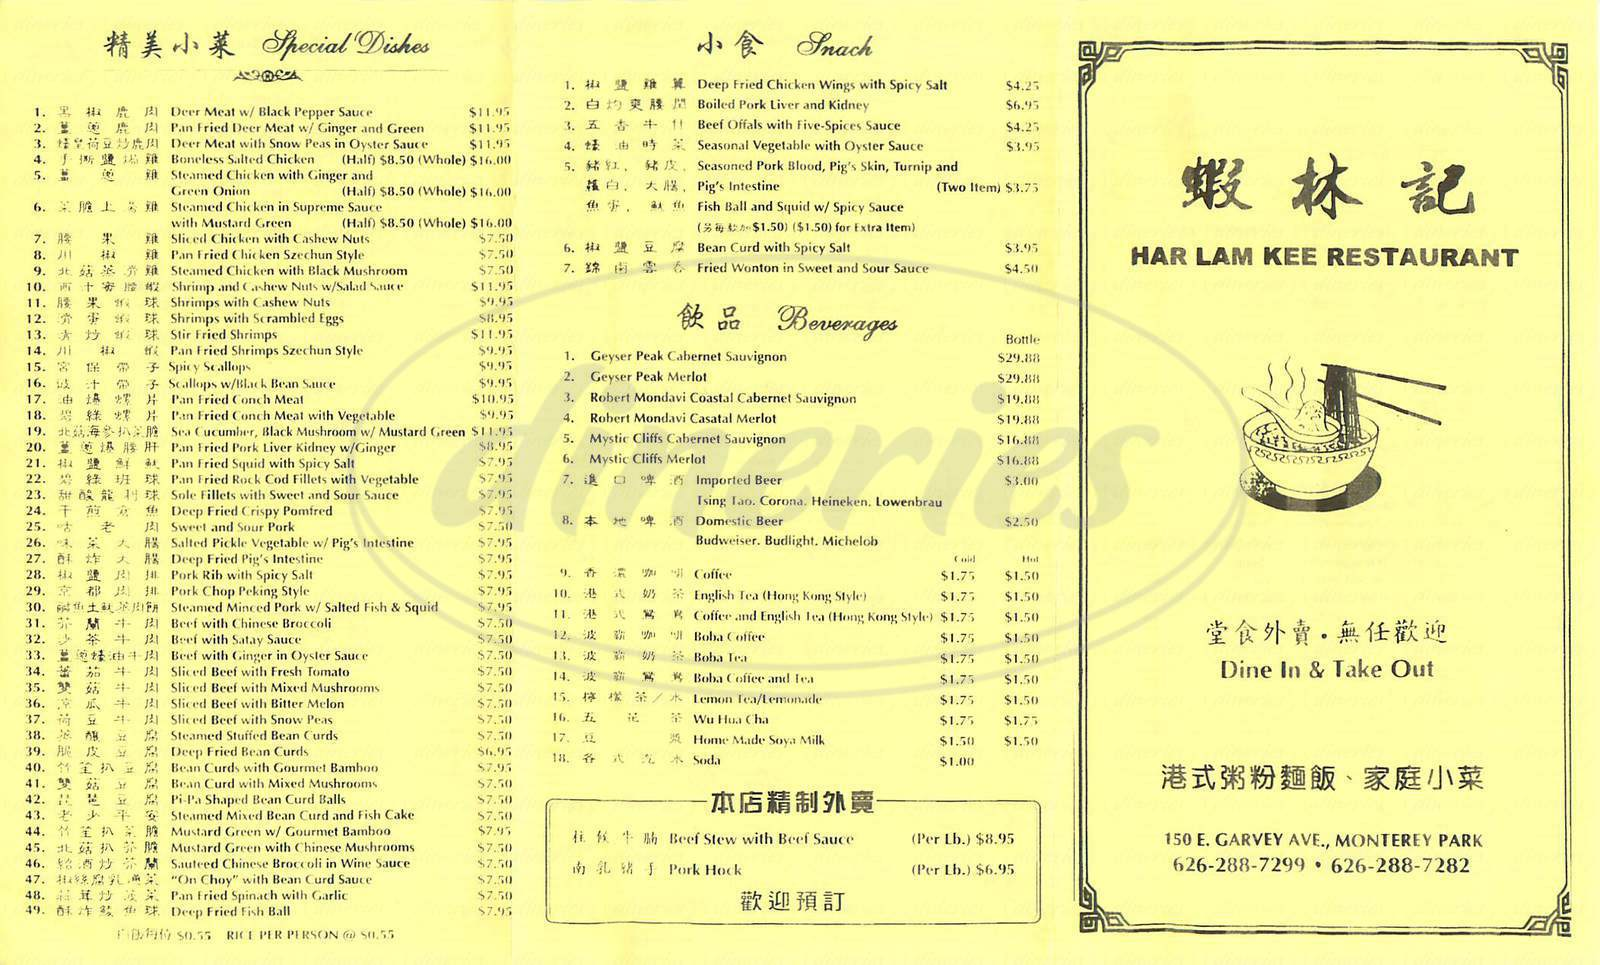 menu for Har Lam Kee Restaurant